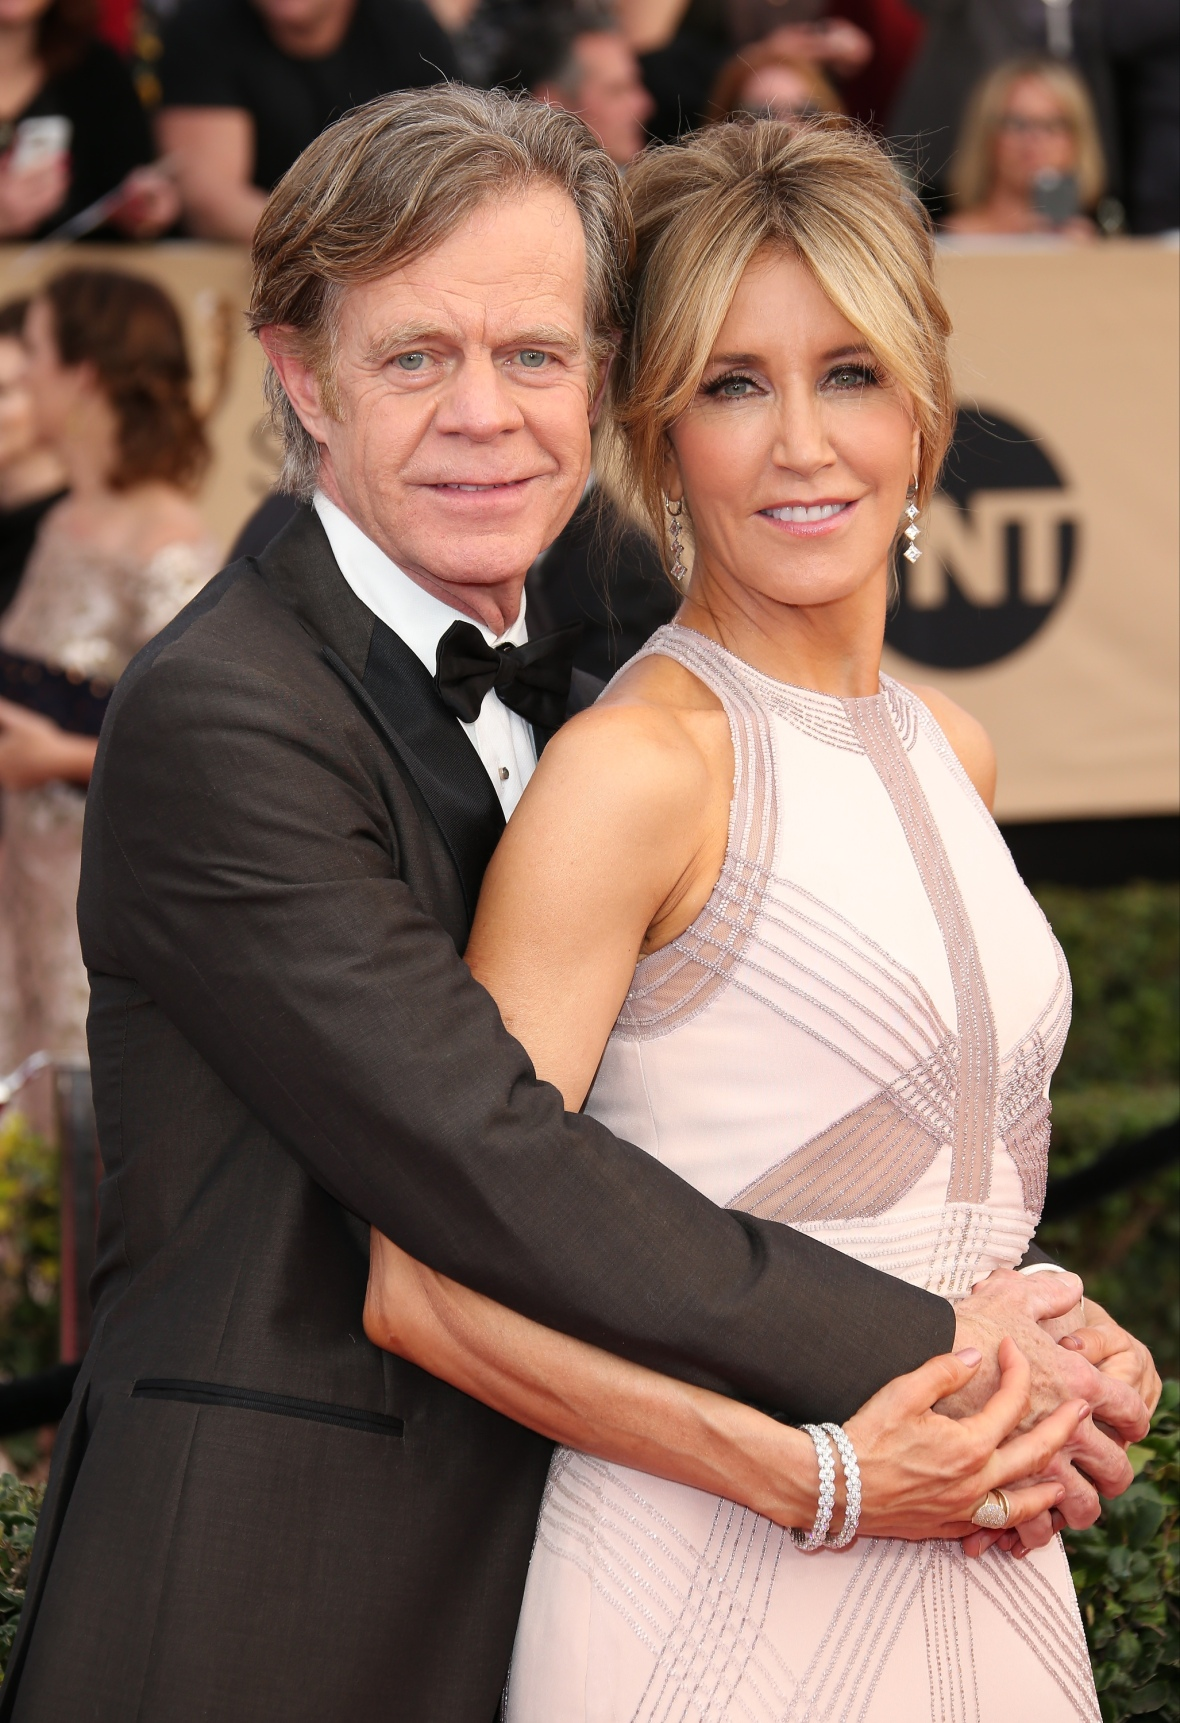 felicity huffman william h. macy getty images